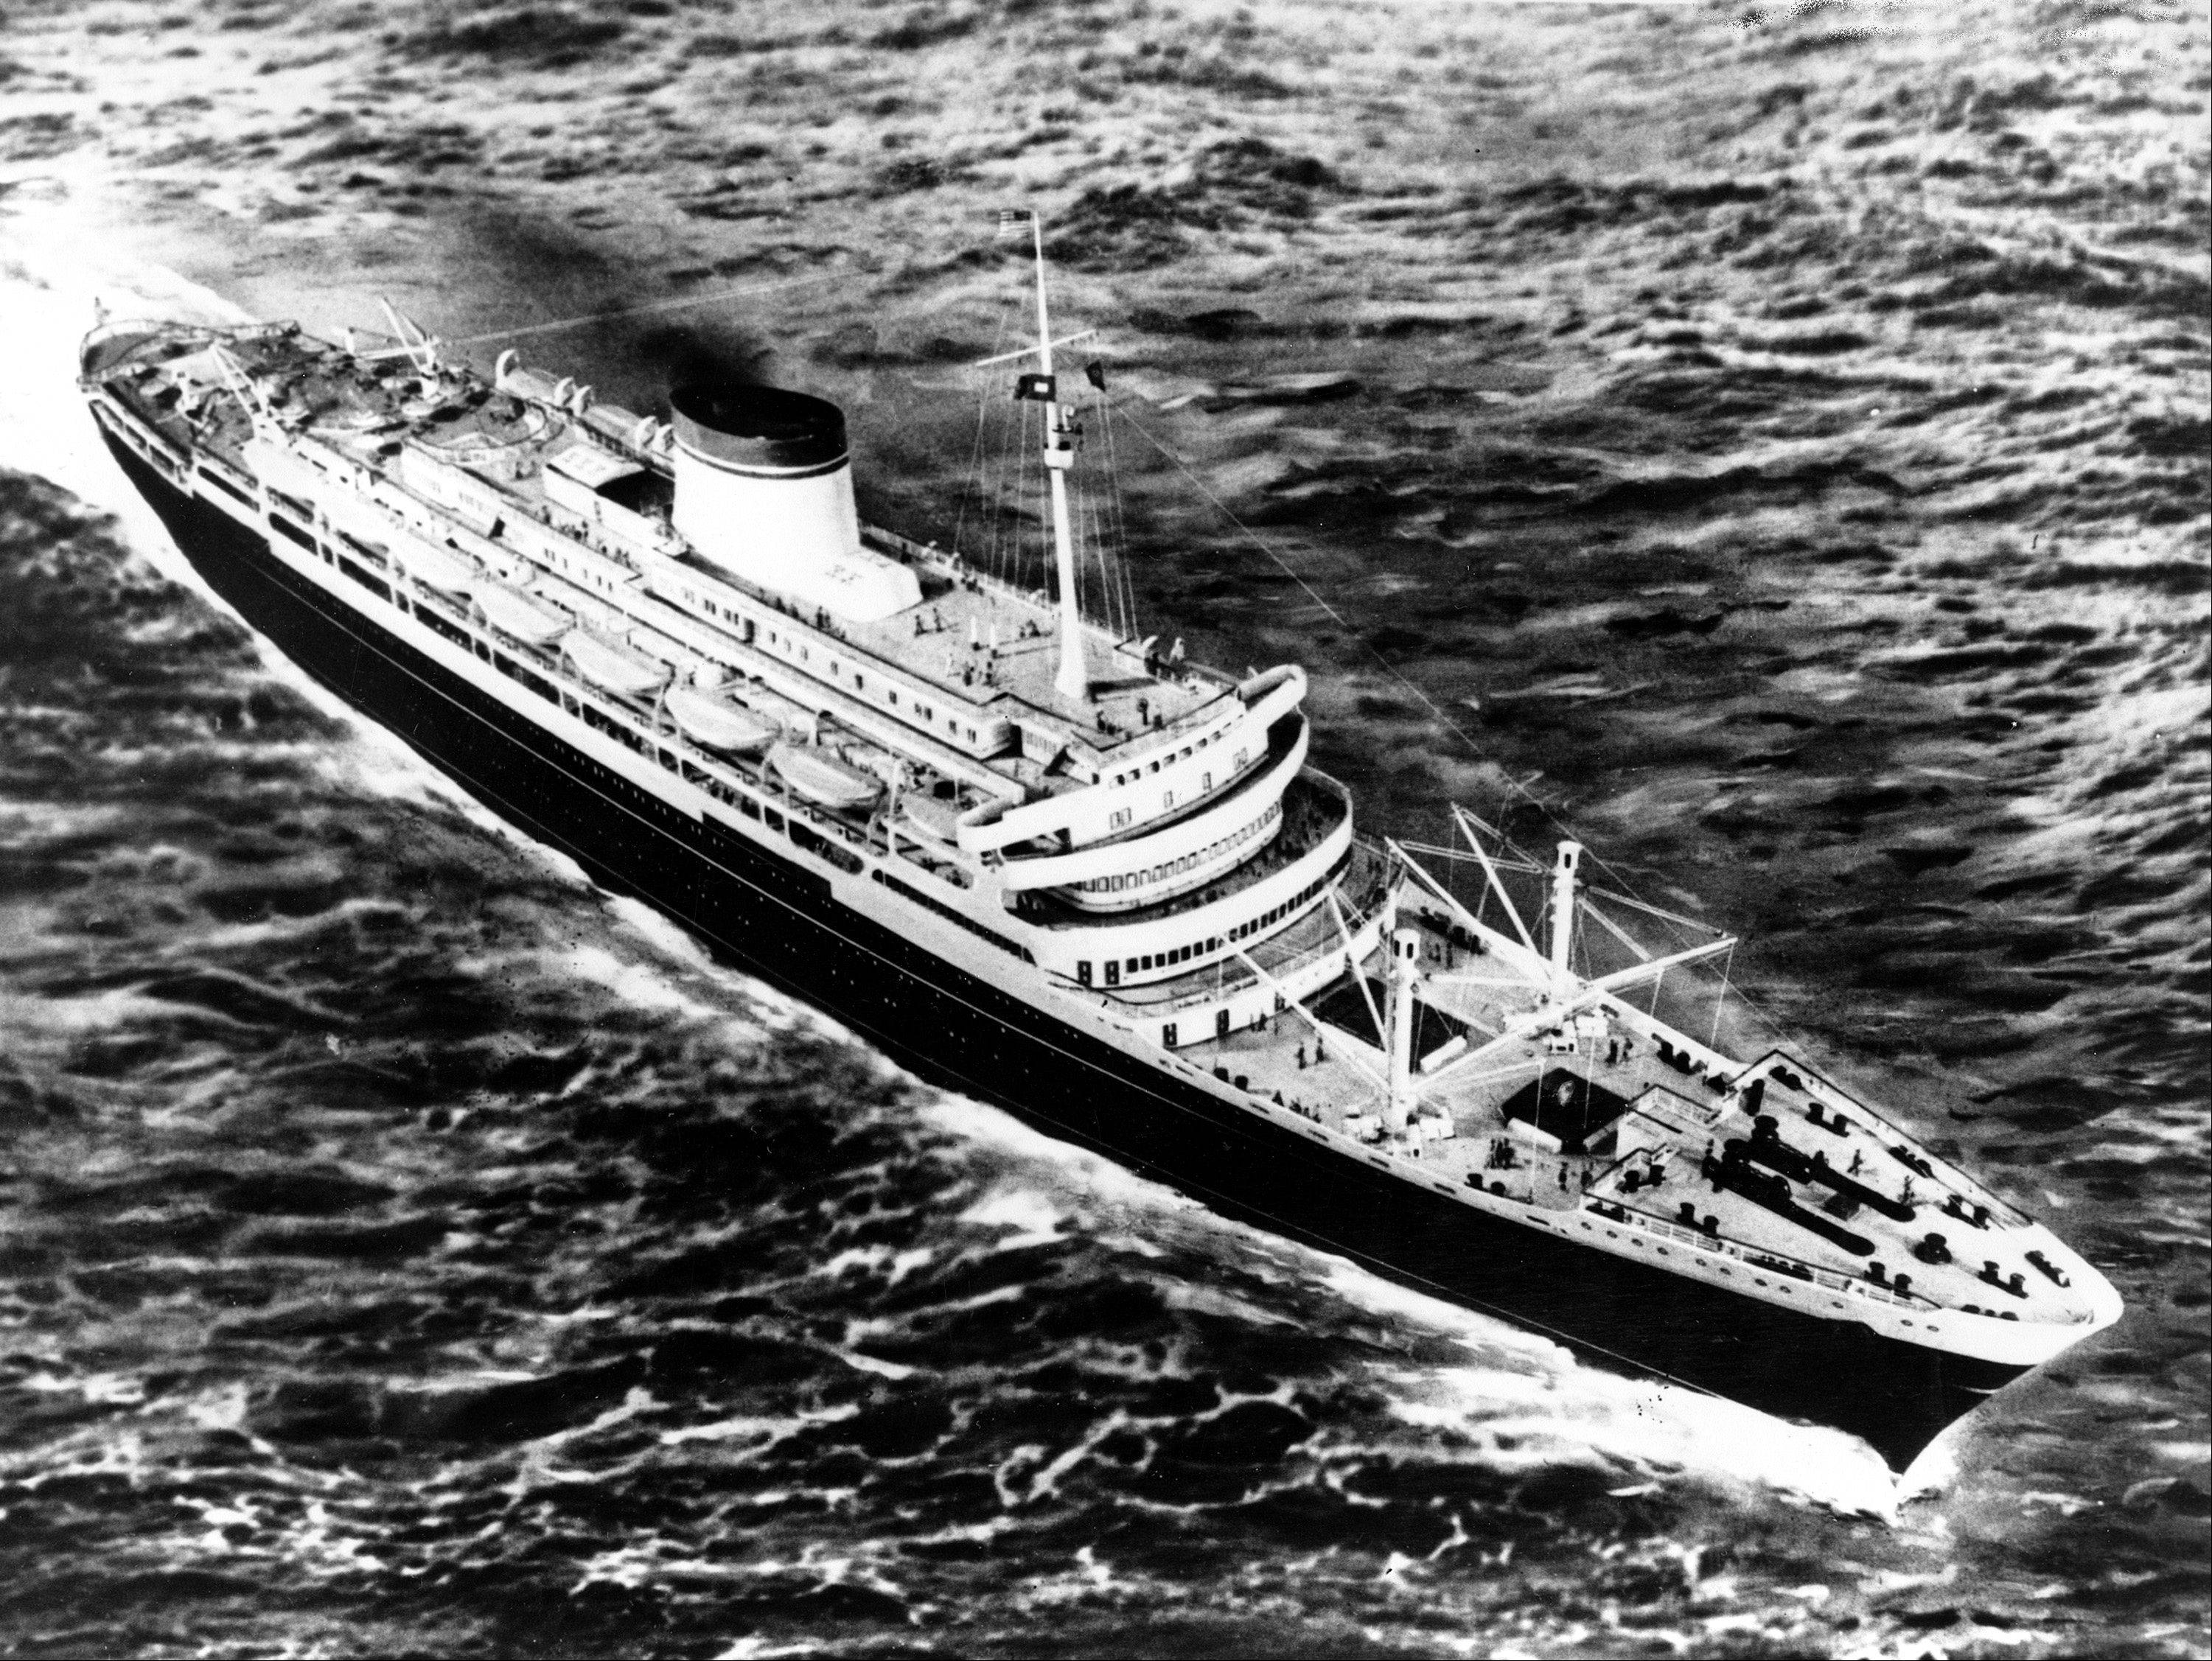 This is an undated photo of the 29,000-ton Italian luxury liner Andrea Doria. The passenger ship was struck by the Swedish-American vessel off Nantucket Island, Ma., July 25, 1956. The surviving passengers and crew were rescued before the ship sank in the Atlantic. The steamship measures 697 feet in length and was built in 1953.